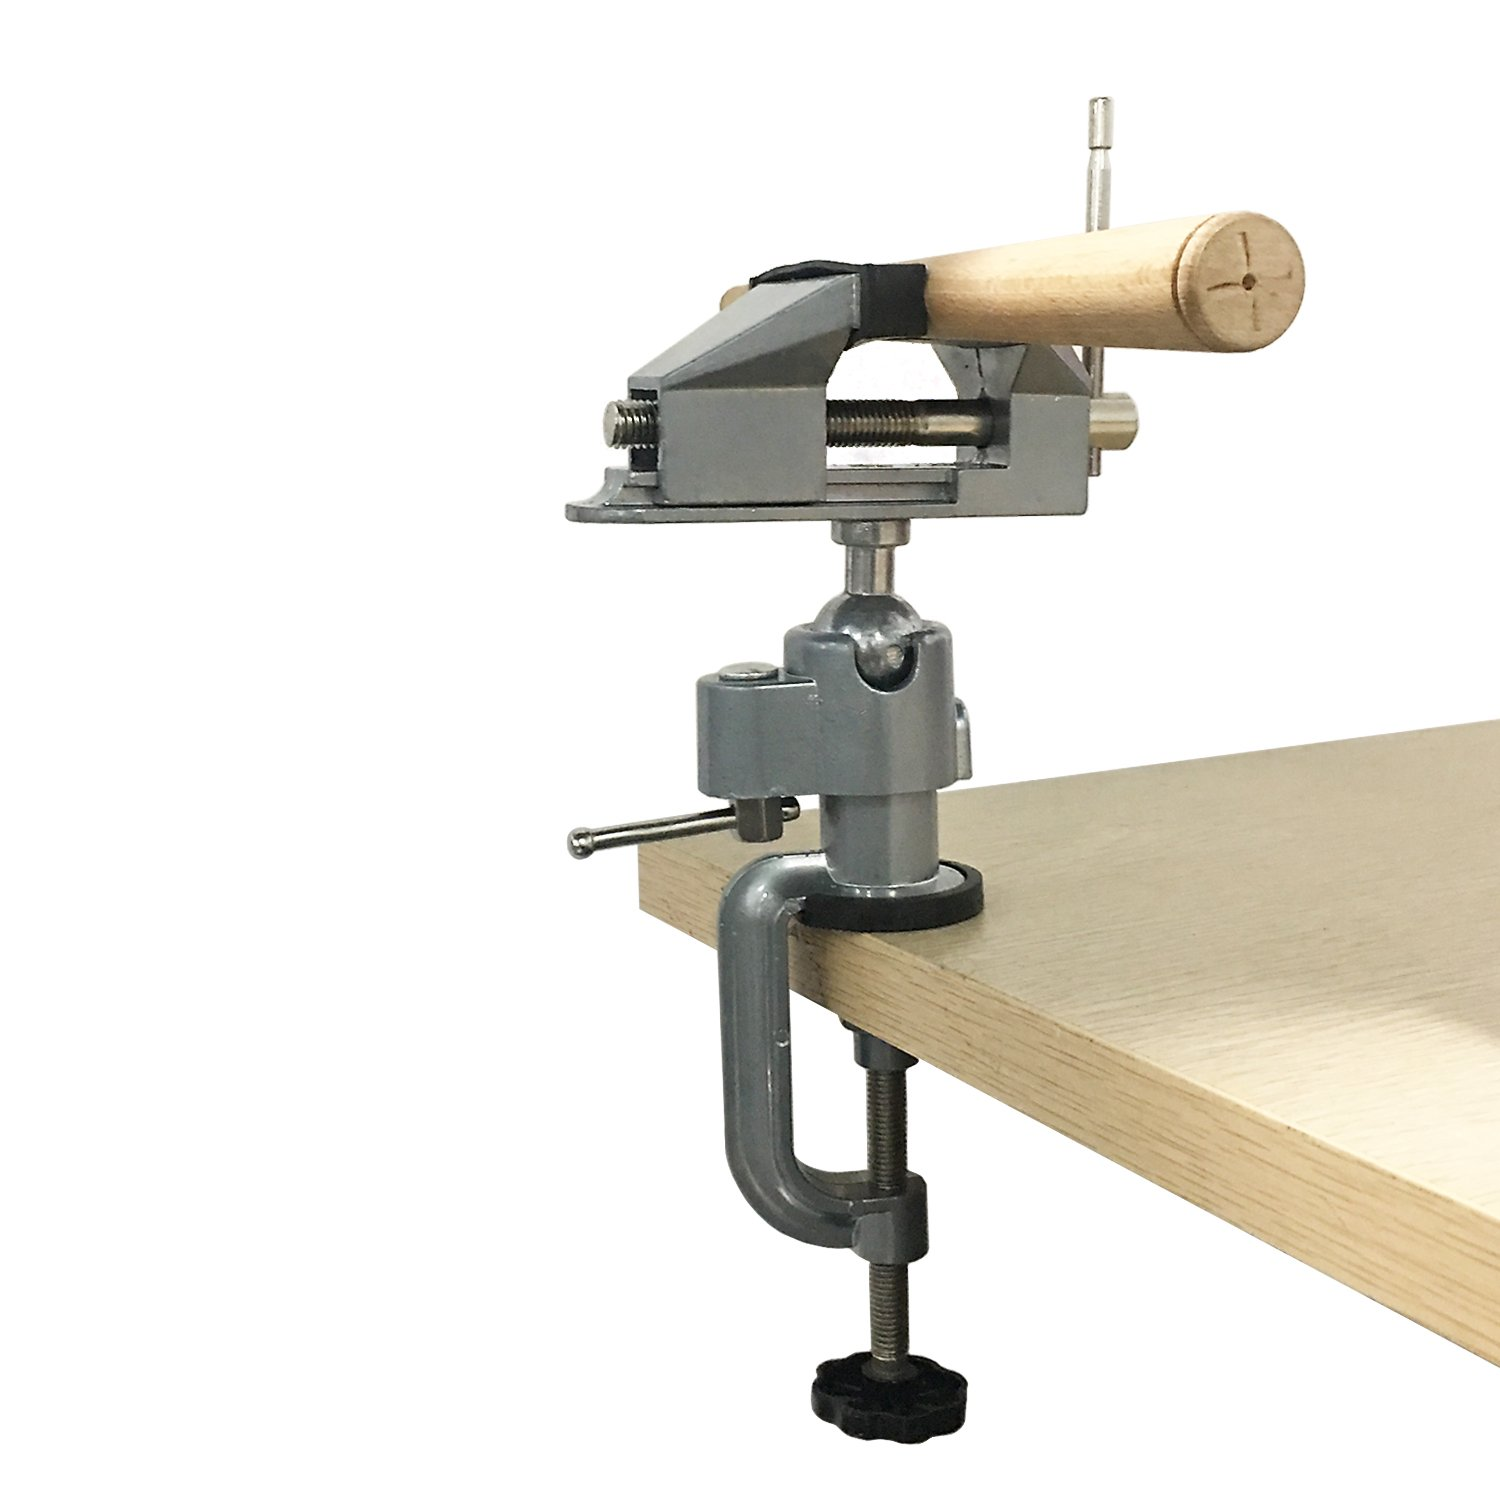 New Asahi 360 Degree Rotating Jaw Head Clamp Table Vice Work Bench Vise For Hobby Jewelry Inspection Universal Clamp Fixed Tools by New Asahi (Image #2)